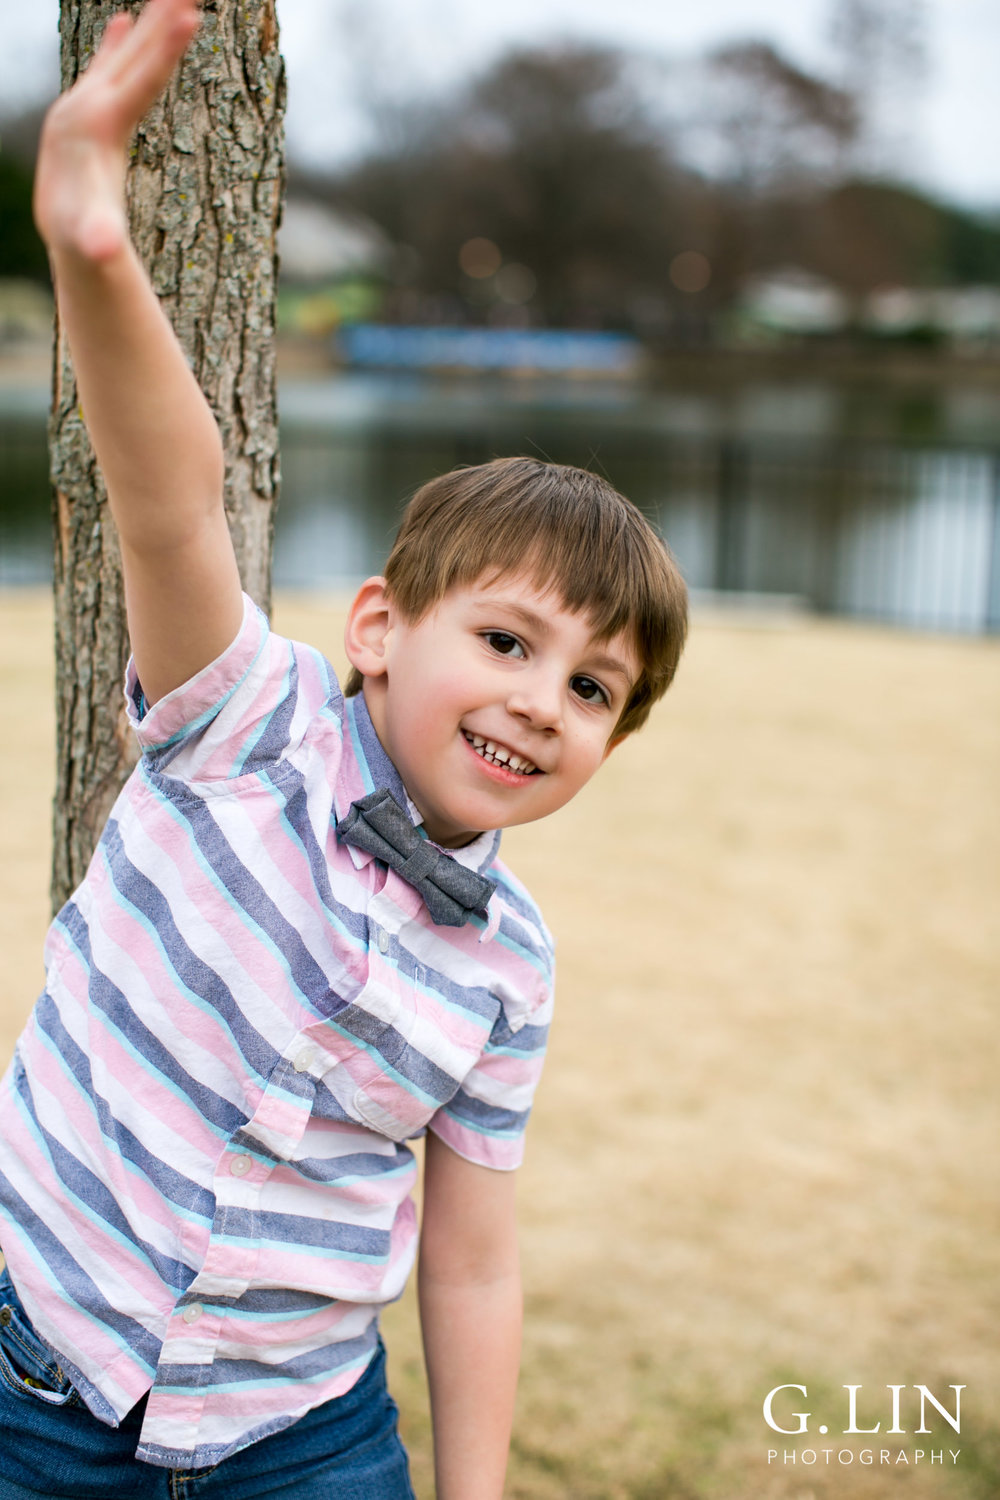 Raleigh Family Photographer | G. Lin Photography | Boy standing next to tree and smiling